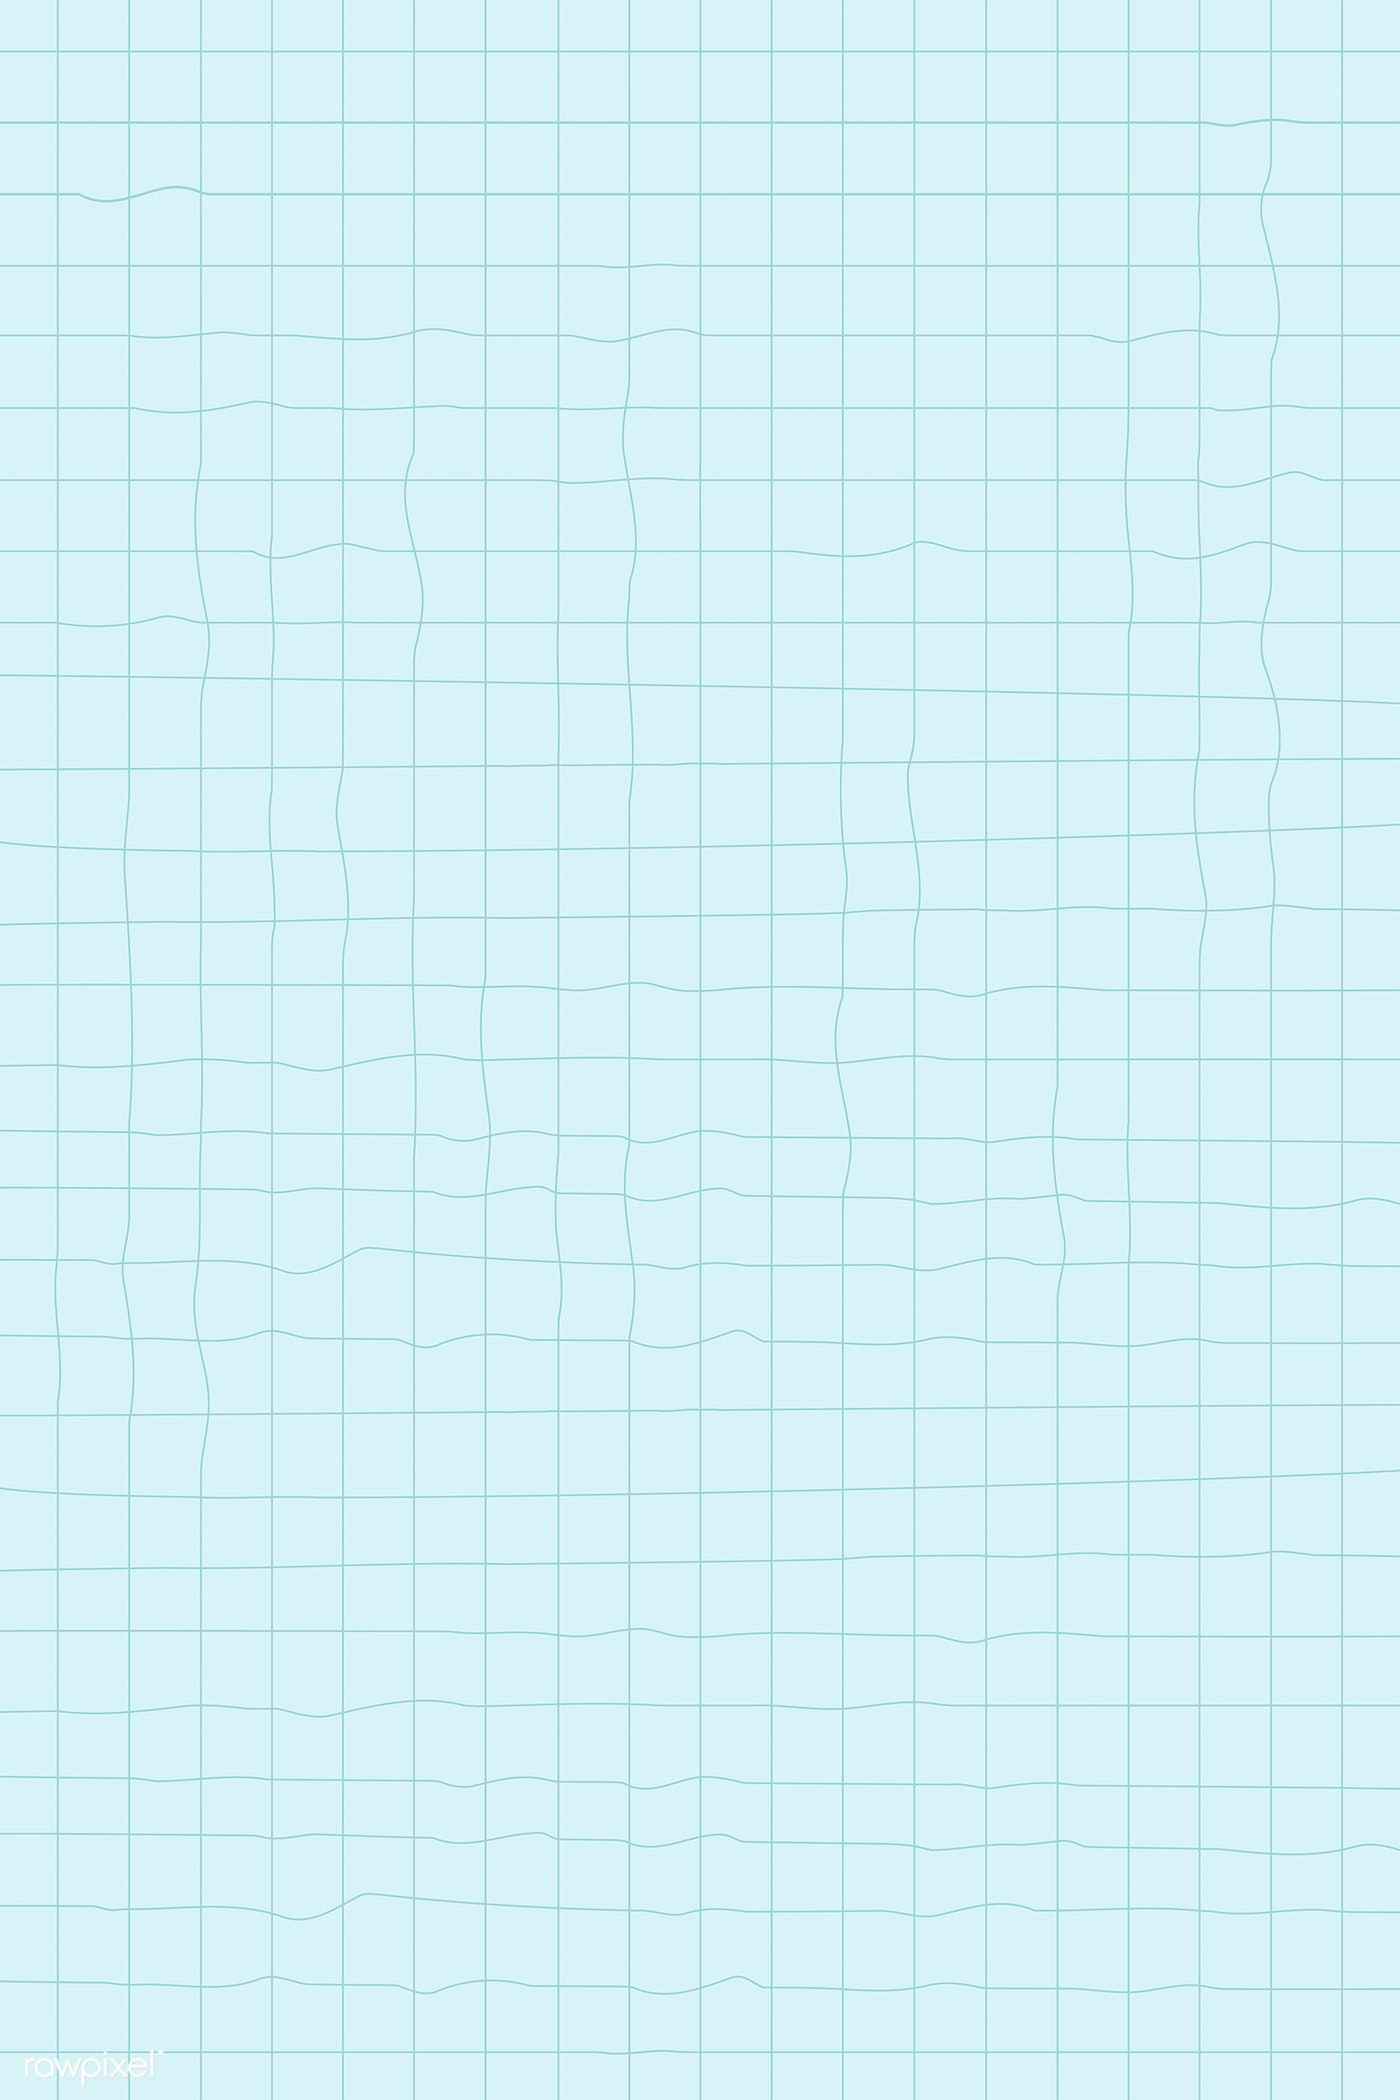 Blank Blue Notepaper Design Vector Free Image By Rawpixel Com Note Paper Vector Free Design Mockup Free